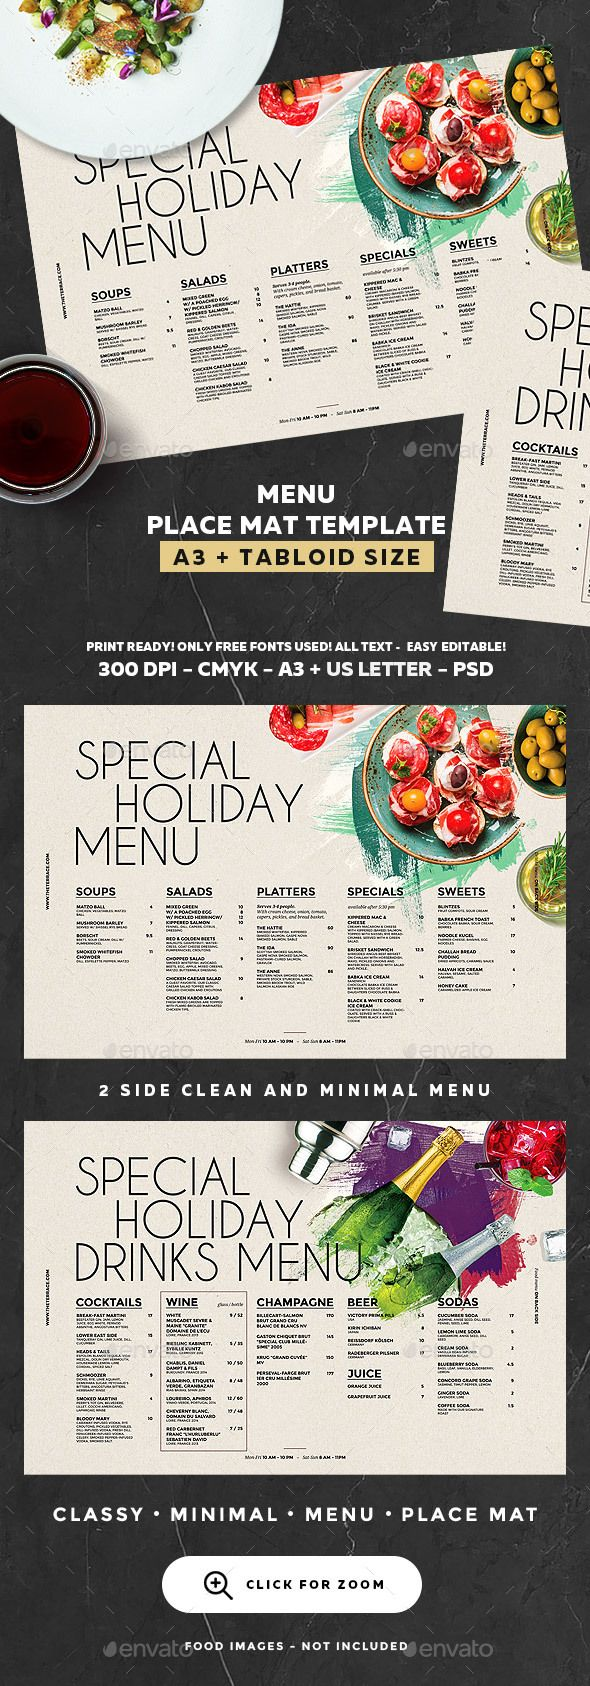 Menu Template — Photoshop PSD #cafe #cocktail menu • Download ➝ https://graphicriver.net/item/menu-template/19244975?ref=pxcr